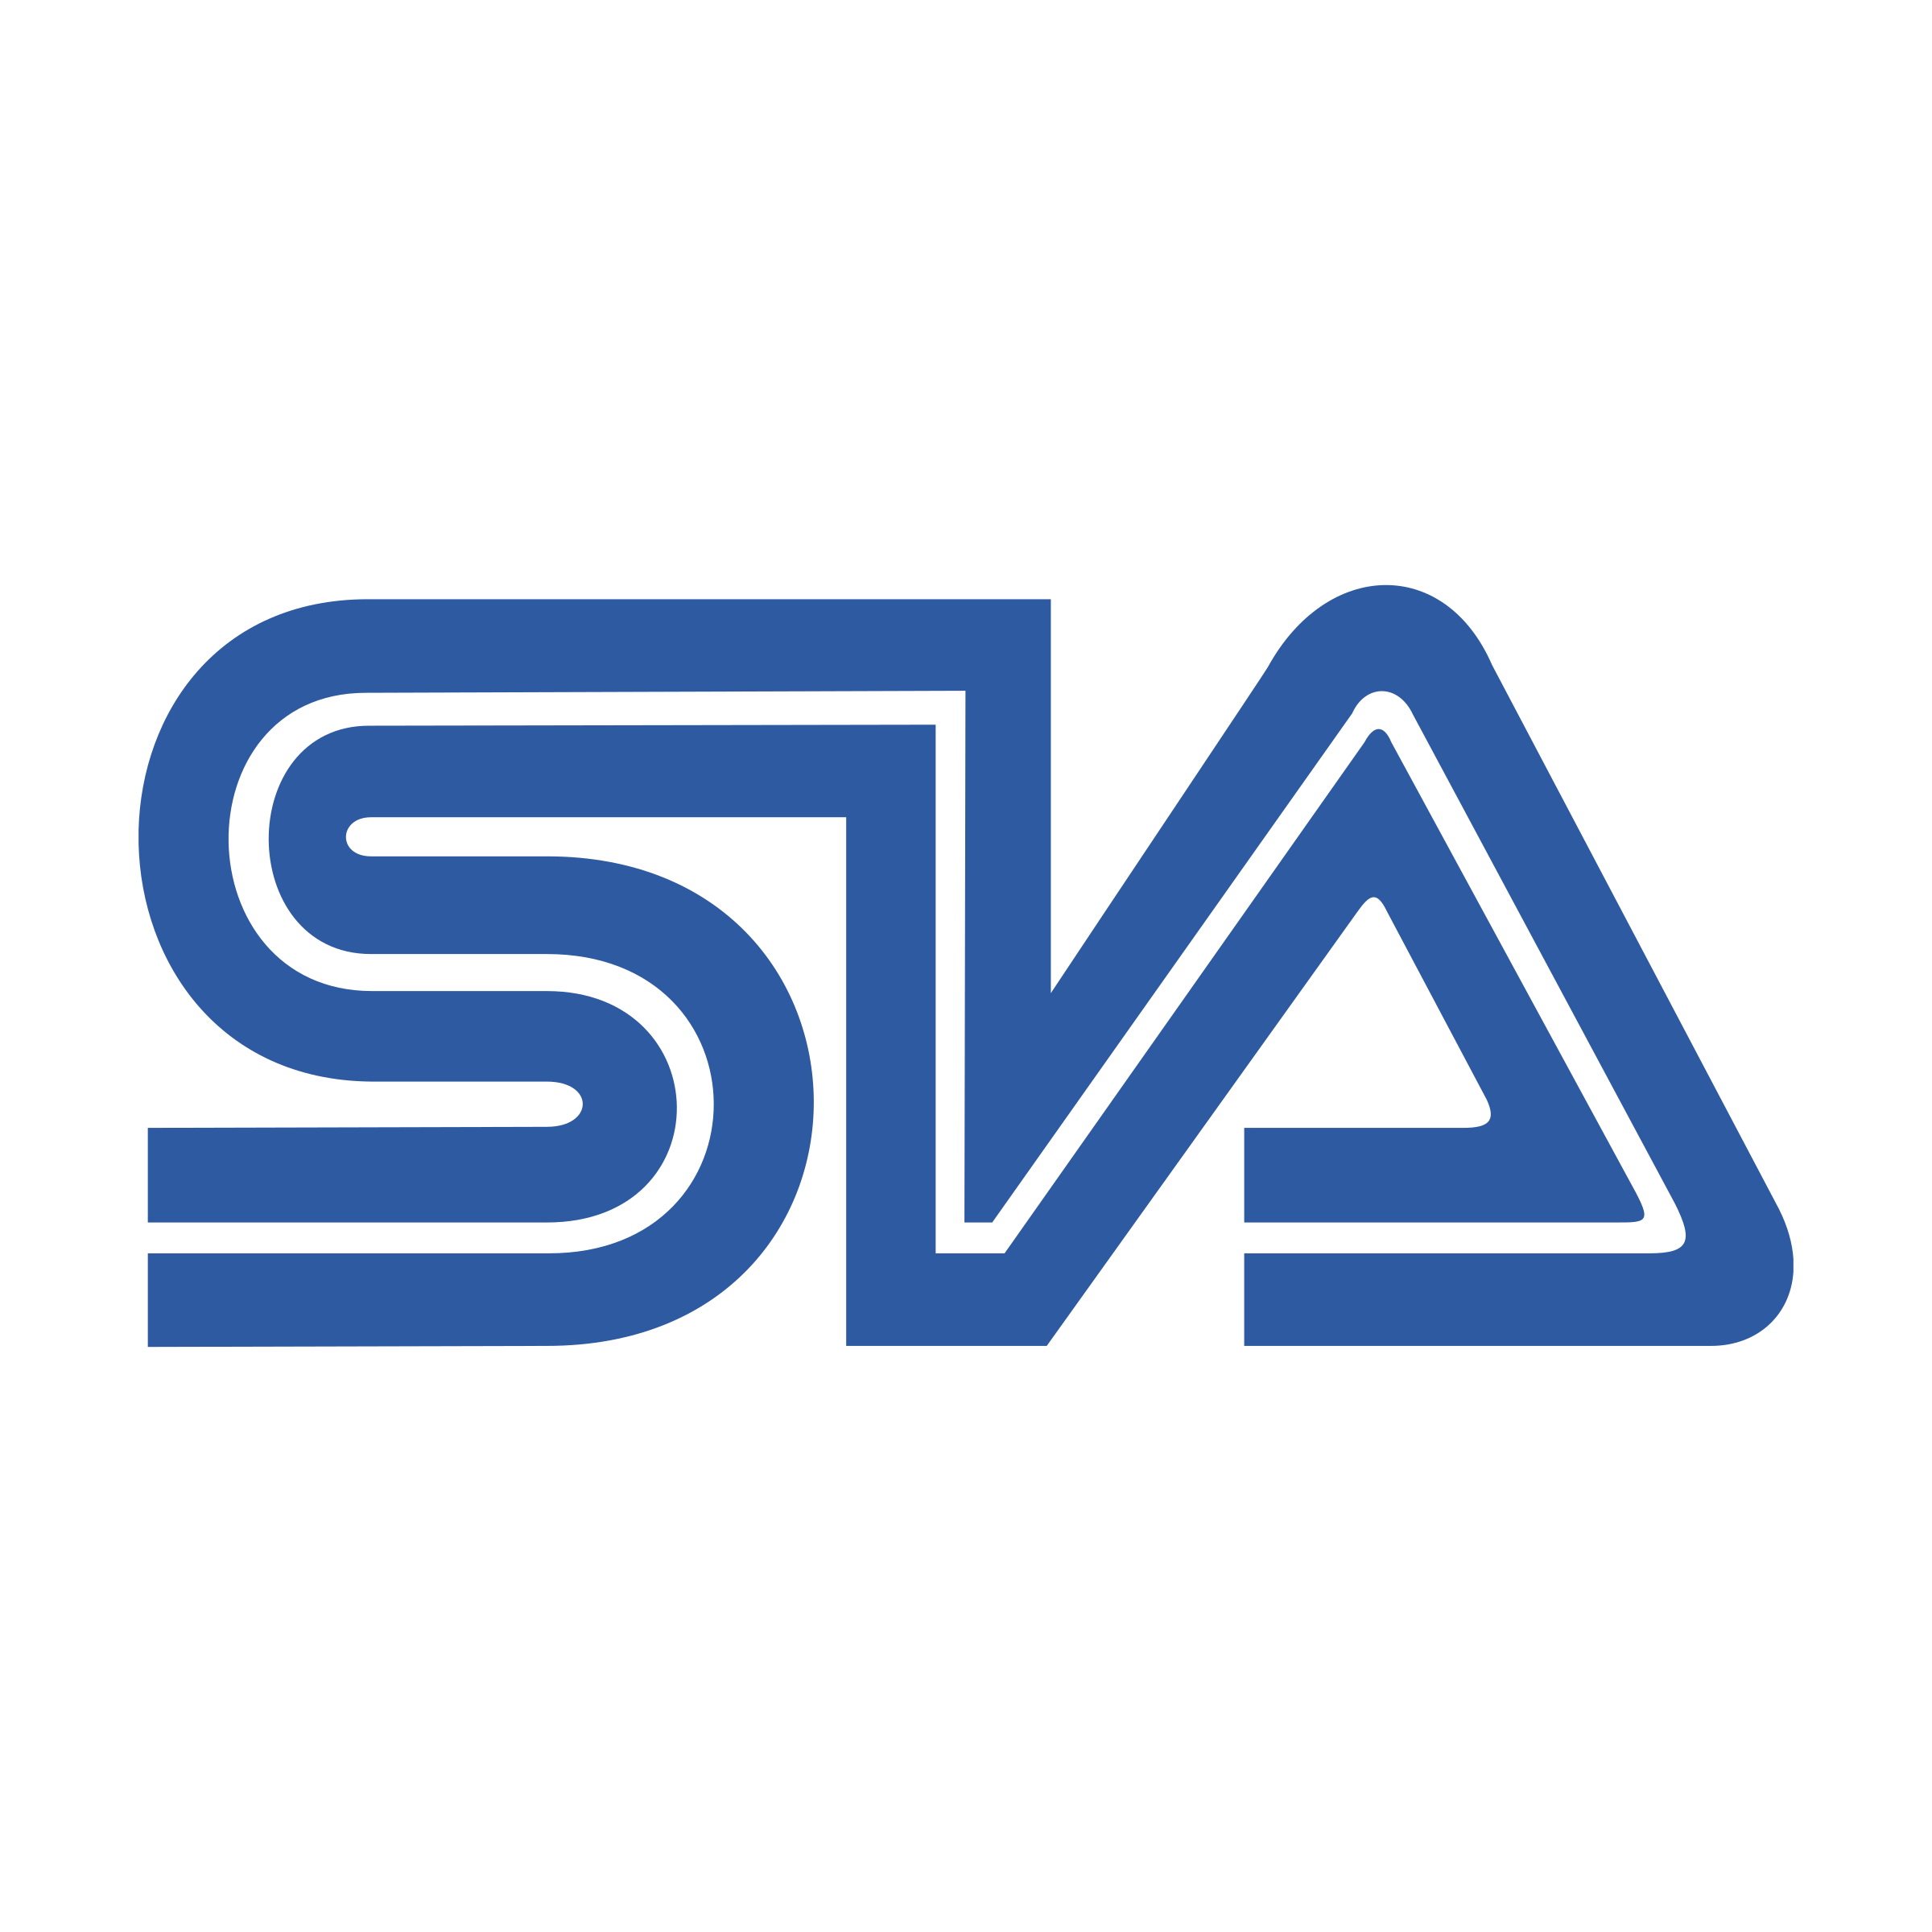 sia-2-logo-png-transparent